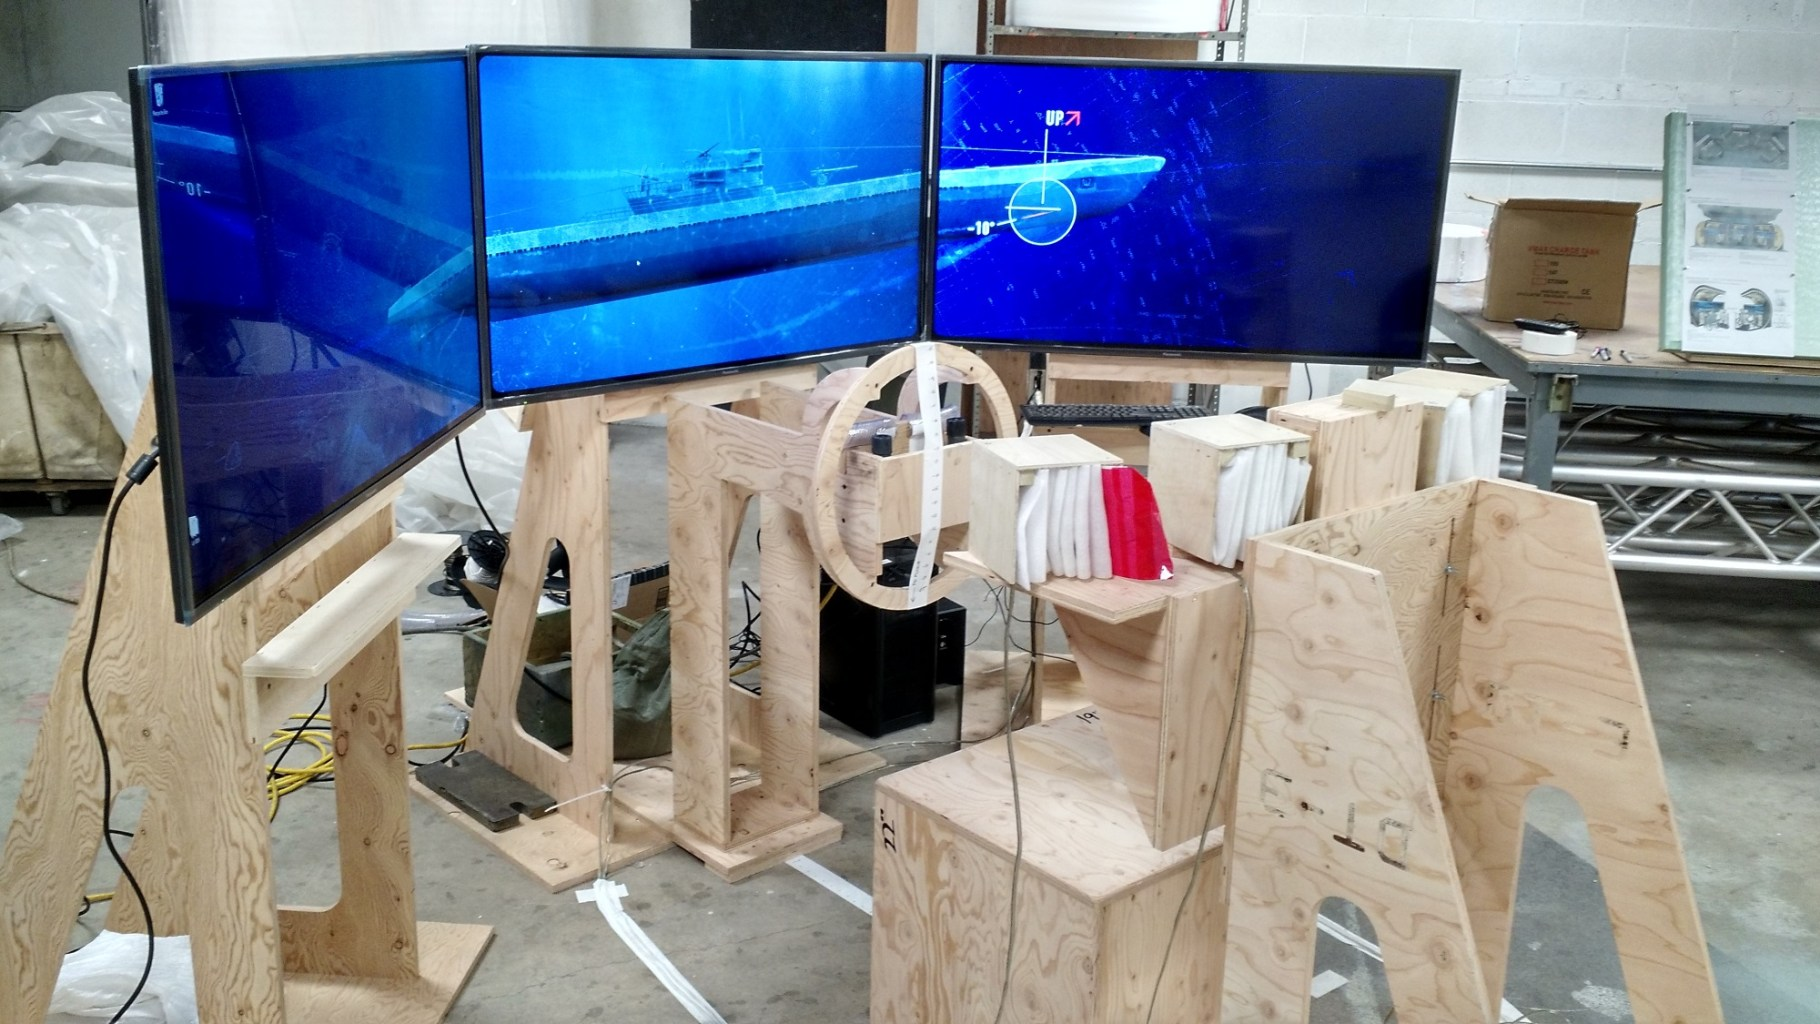 An image of three LCD screens in a semi circle standing on saw horses in a workshop with the image of a submarine displayed on the screens.